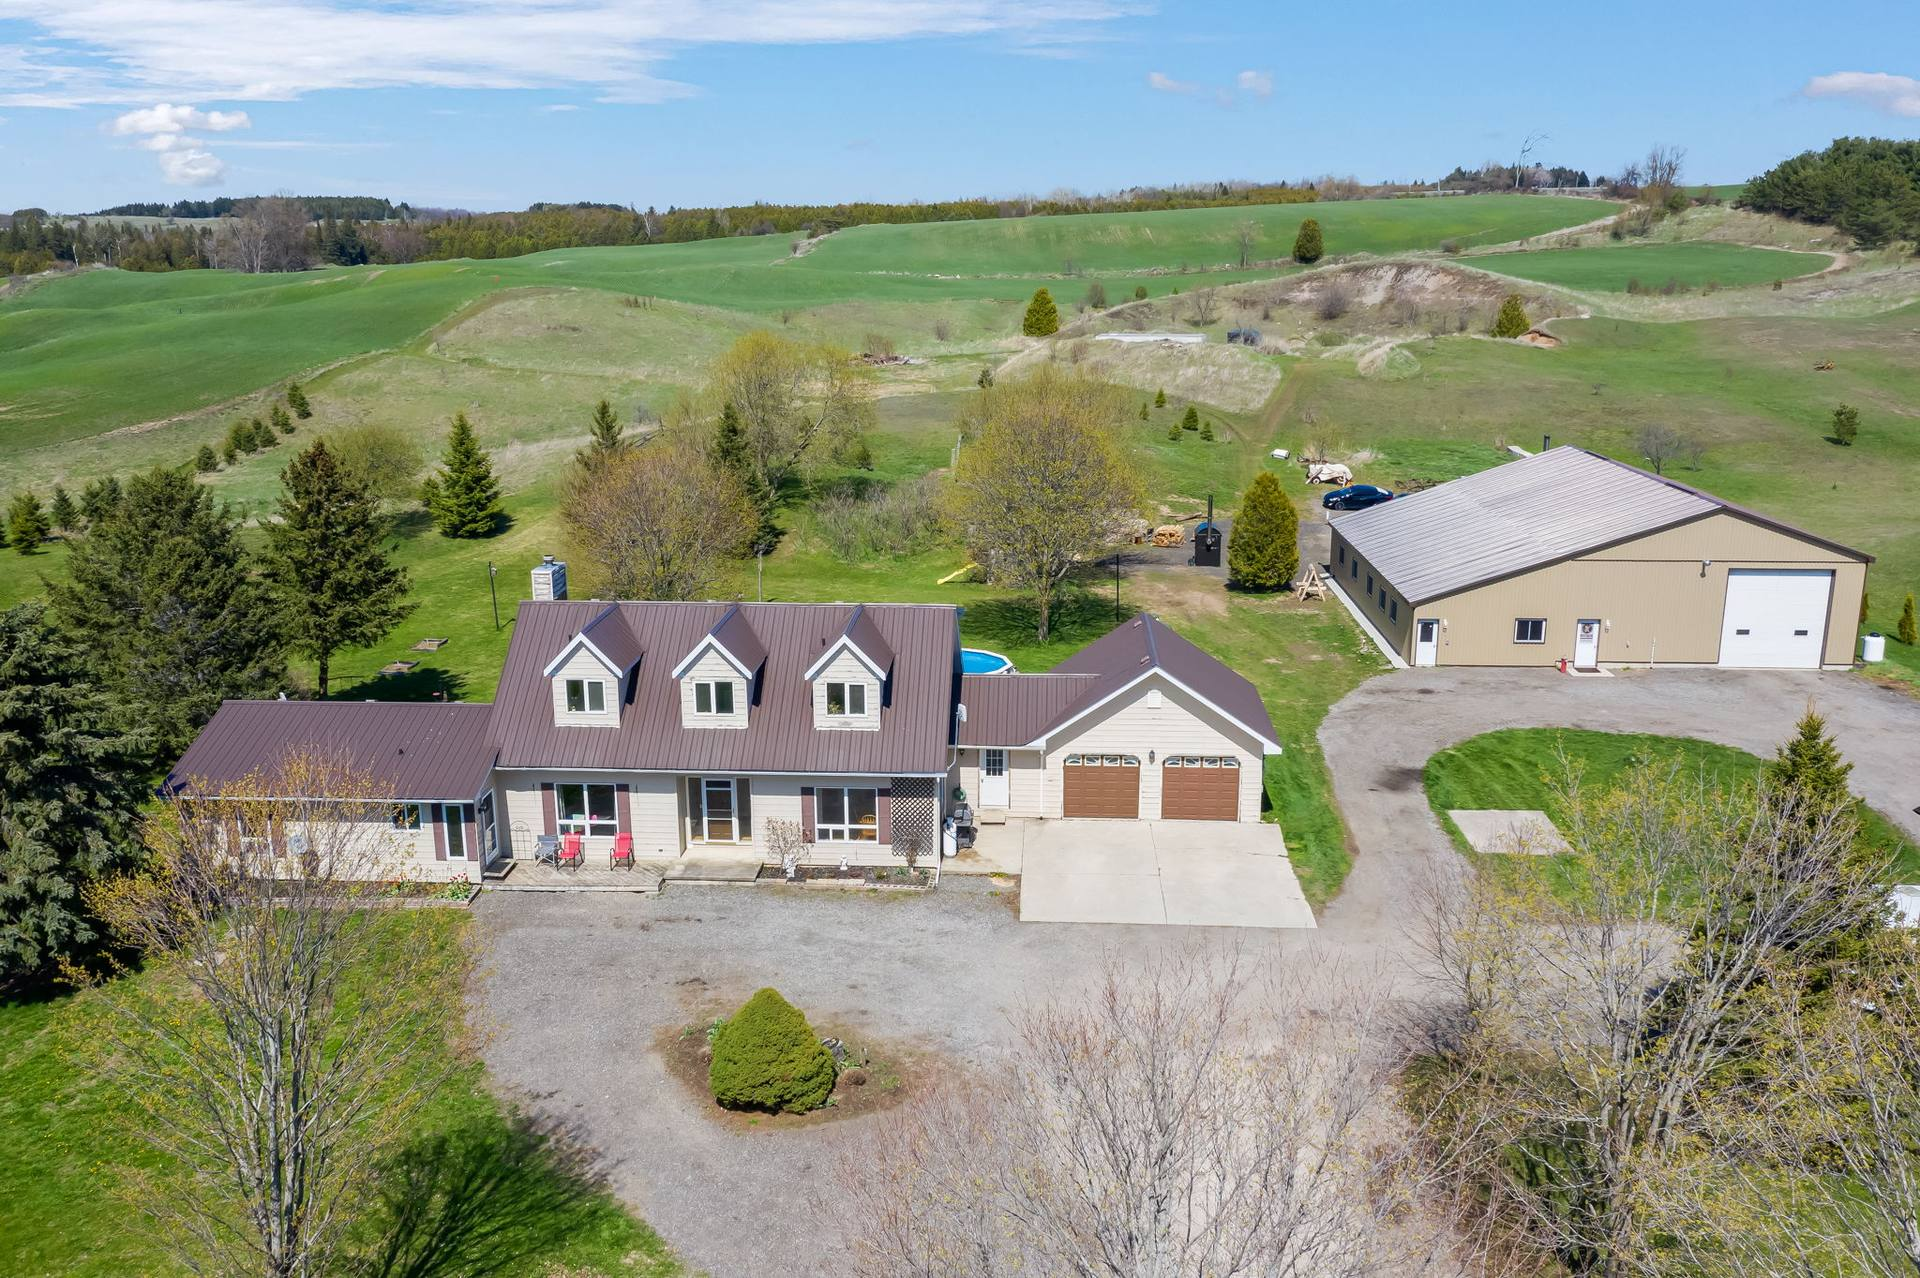 20061 Willoughby Rd, Caledon, ON L7K 1W1, CA